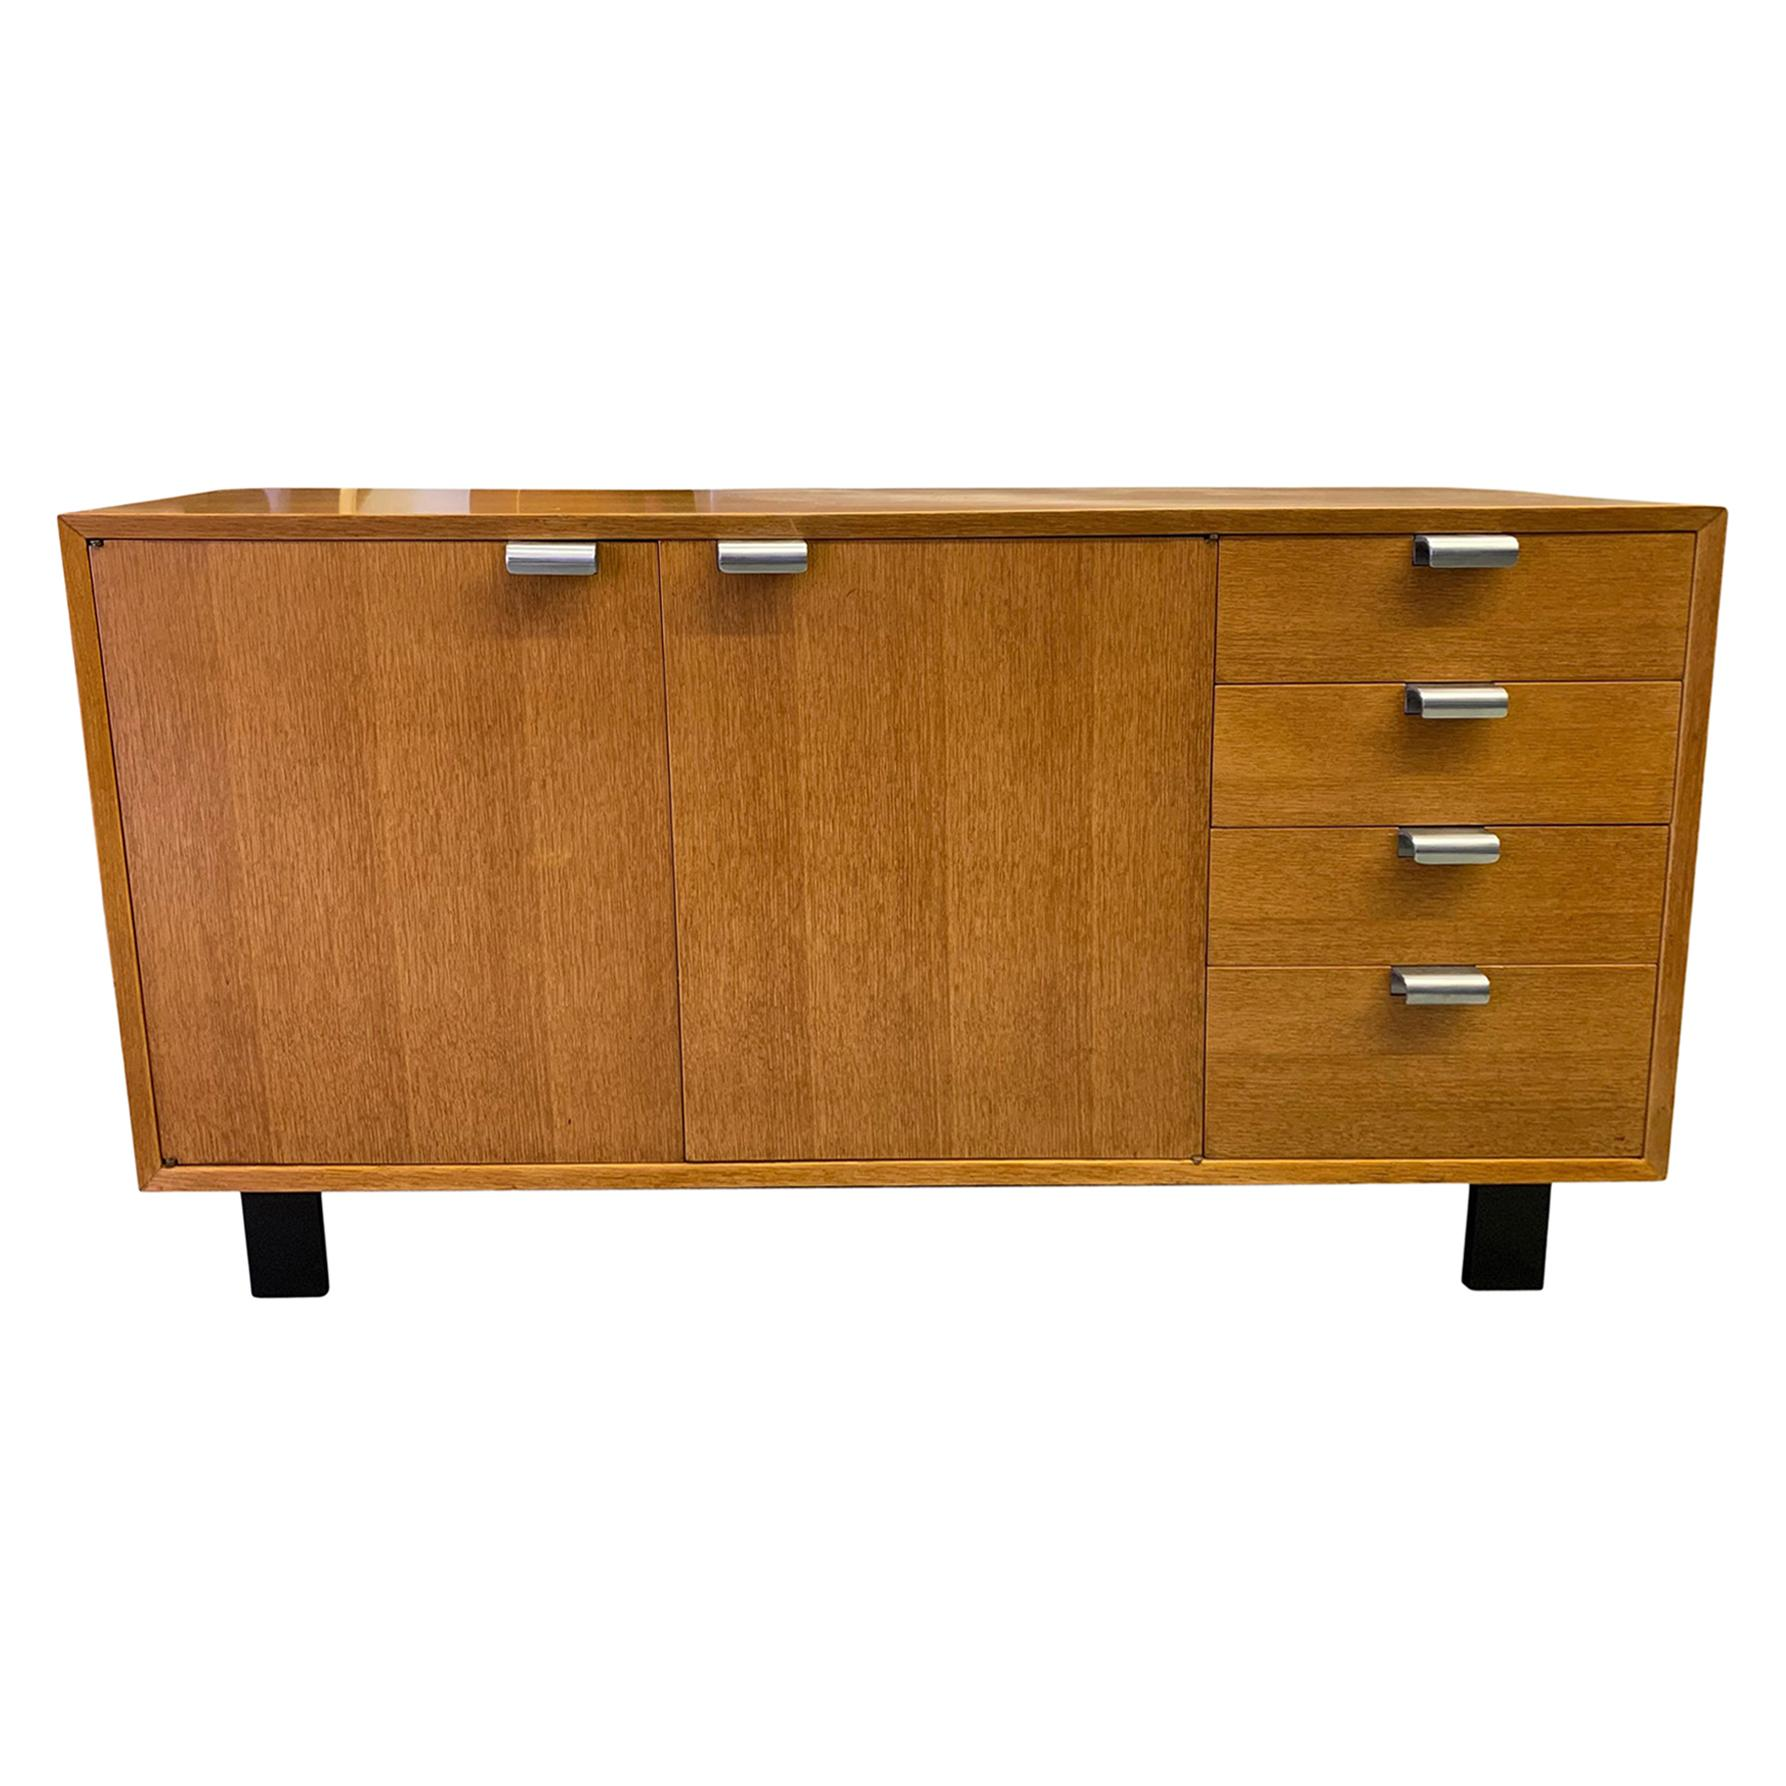 George Nelson for Herman Miller Wood Credenza